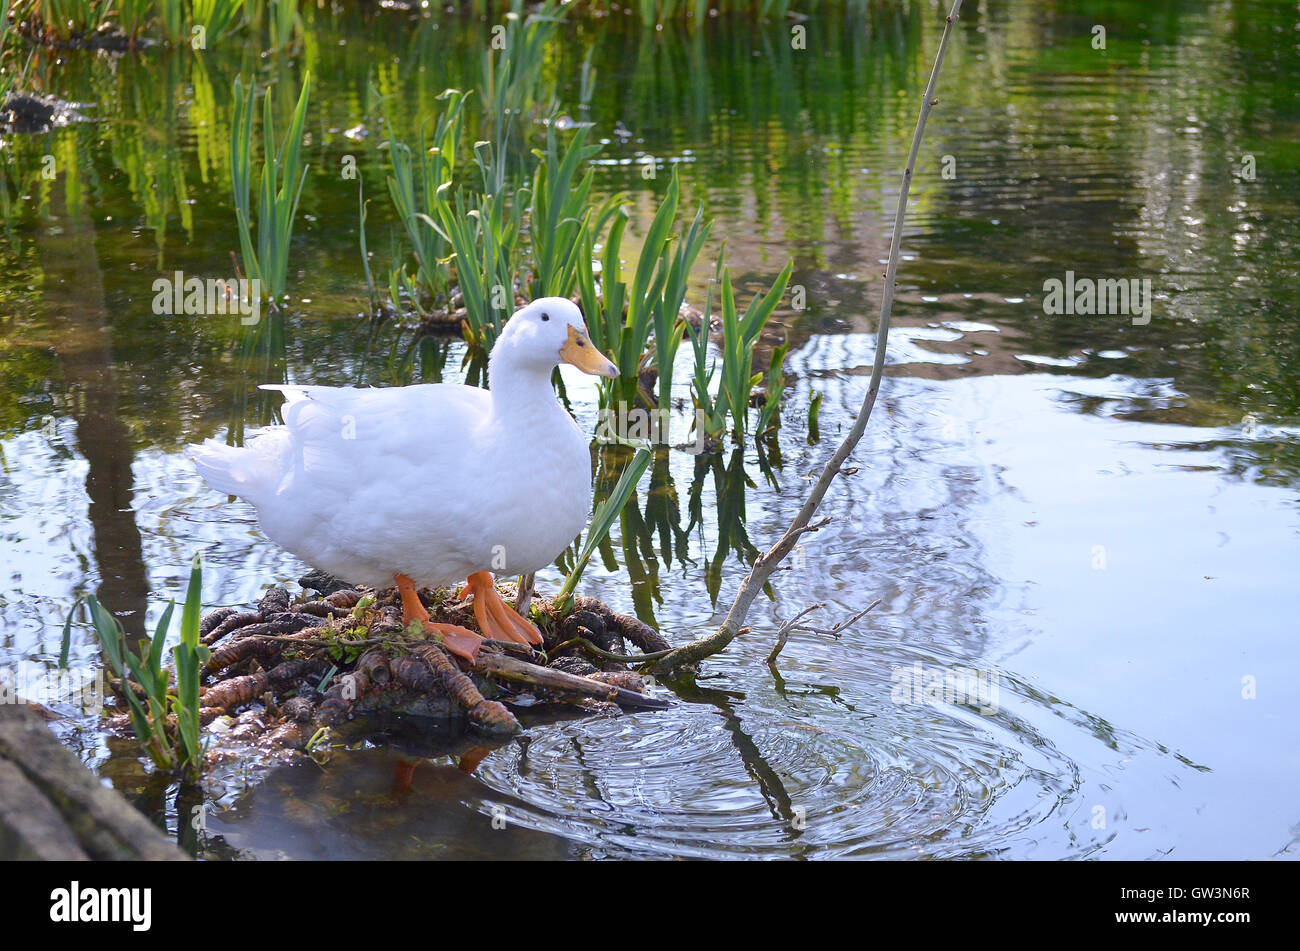 A Pure White Duck Sitting on a Pond root, by rippling and reflective water - Stock Image